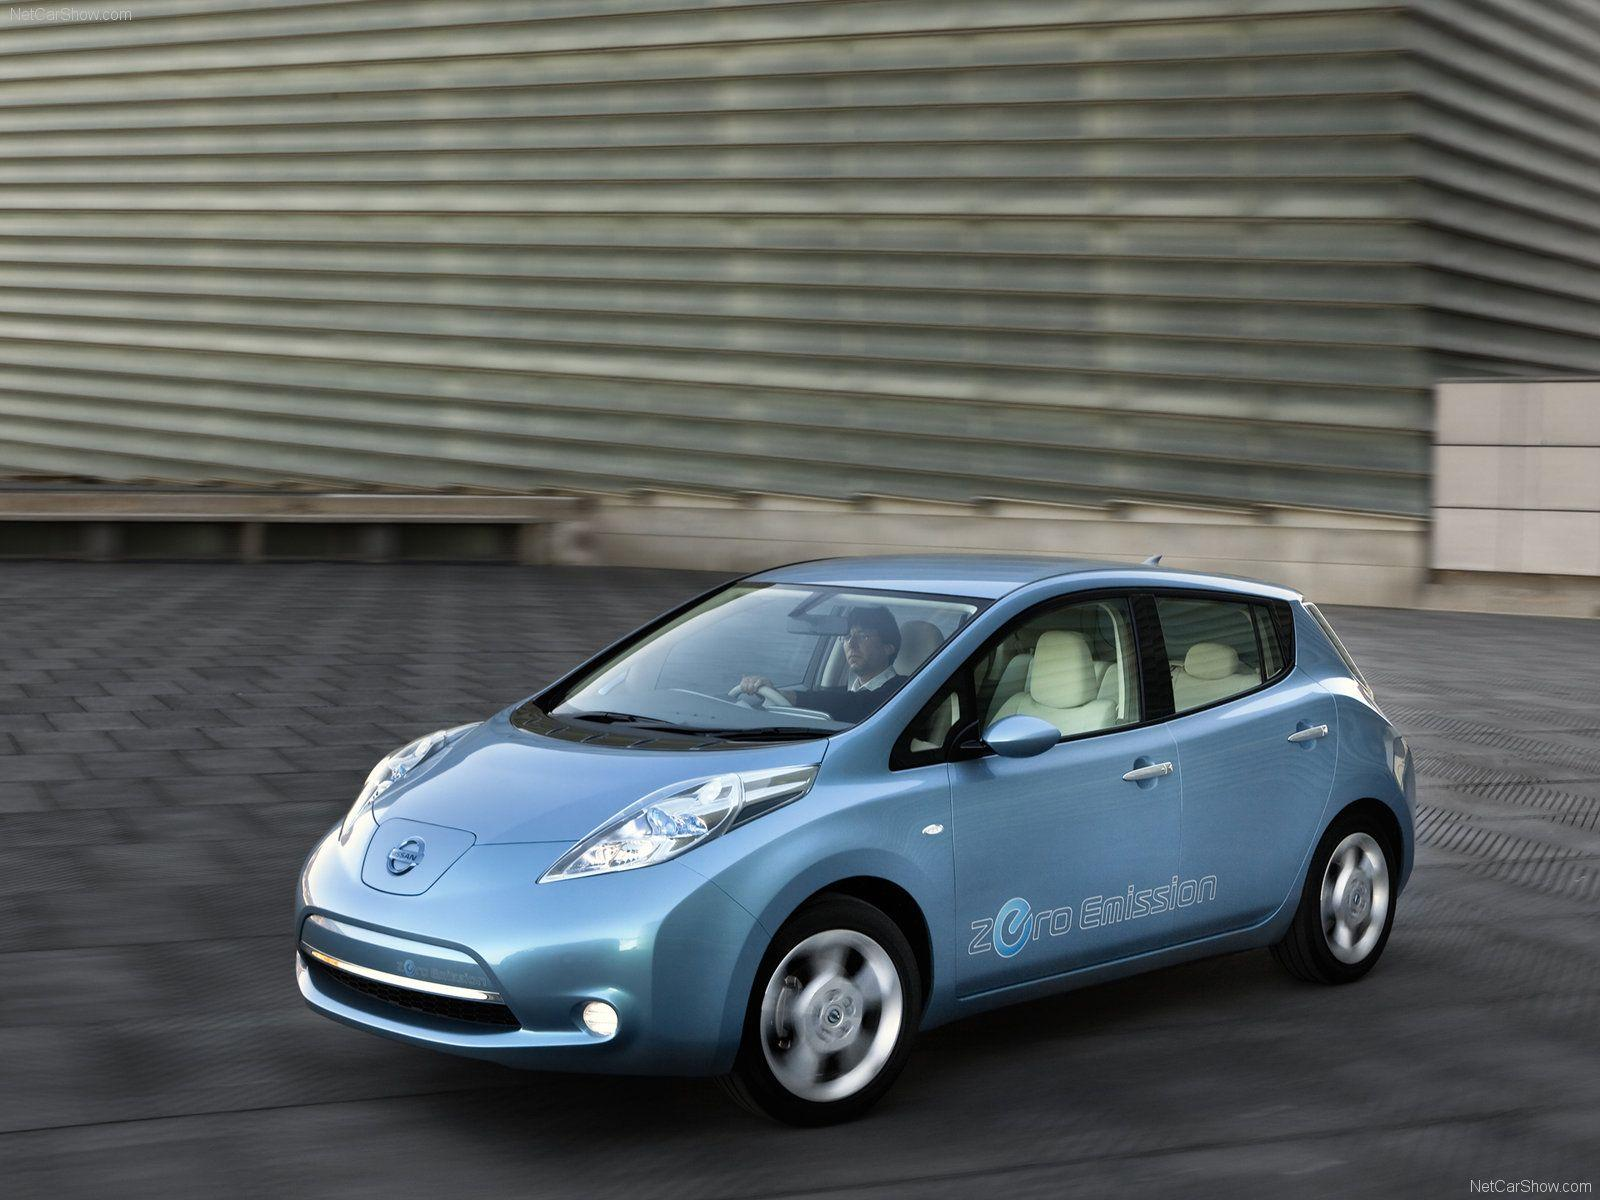 Nissan Leaf picture # 72061 | Nissan photo gallery | CarsBase.com